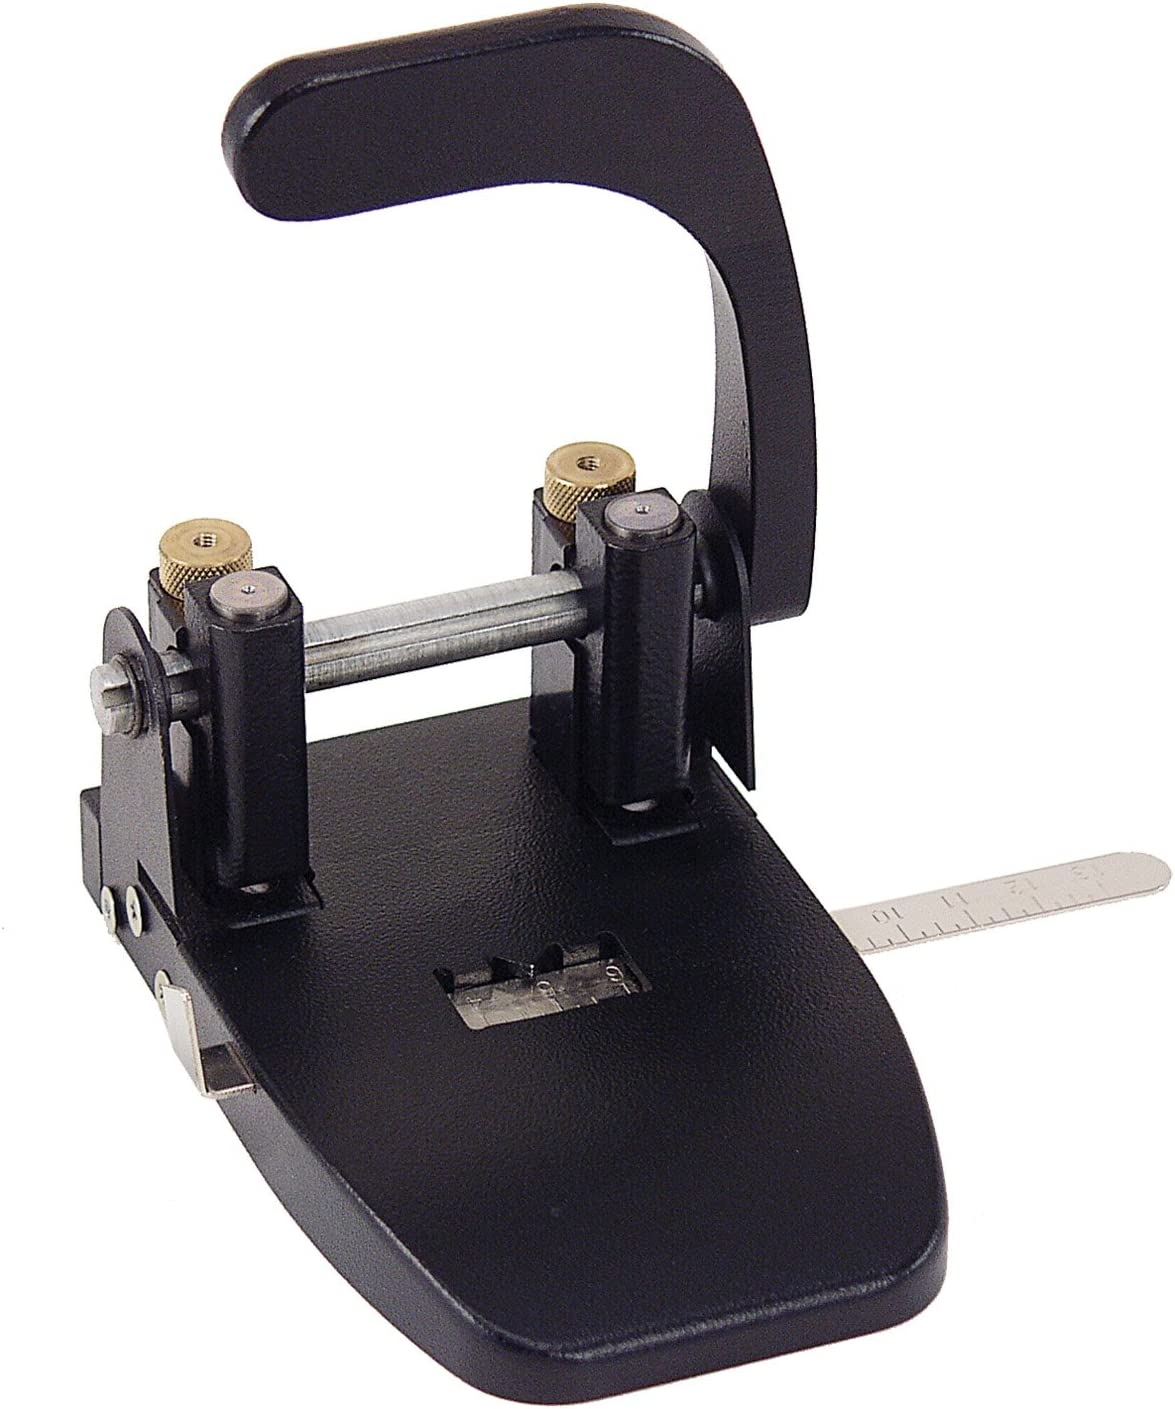 Officemate Heavy Duty 2 Hole Punch with Lever Handle, 40 Sheet Capacity, Black (90072)